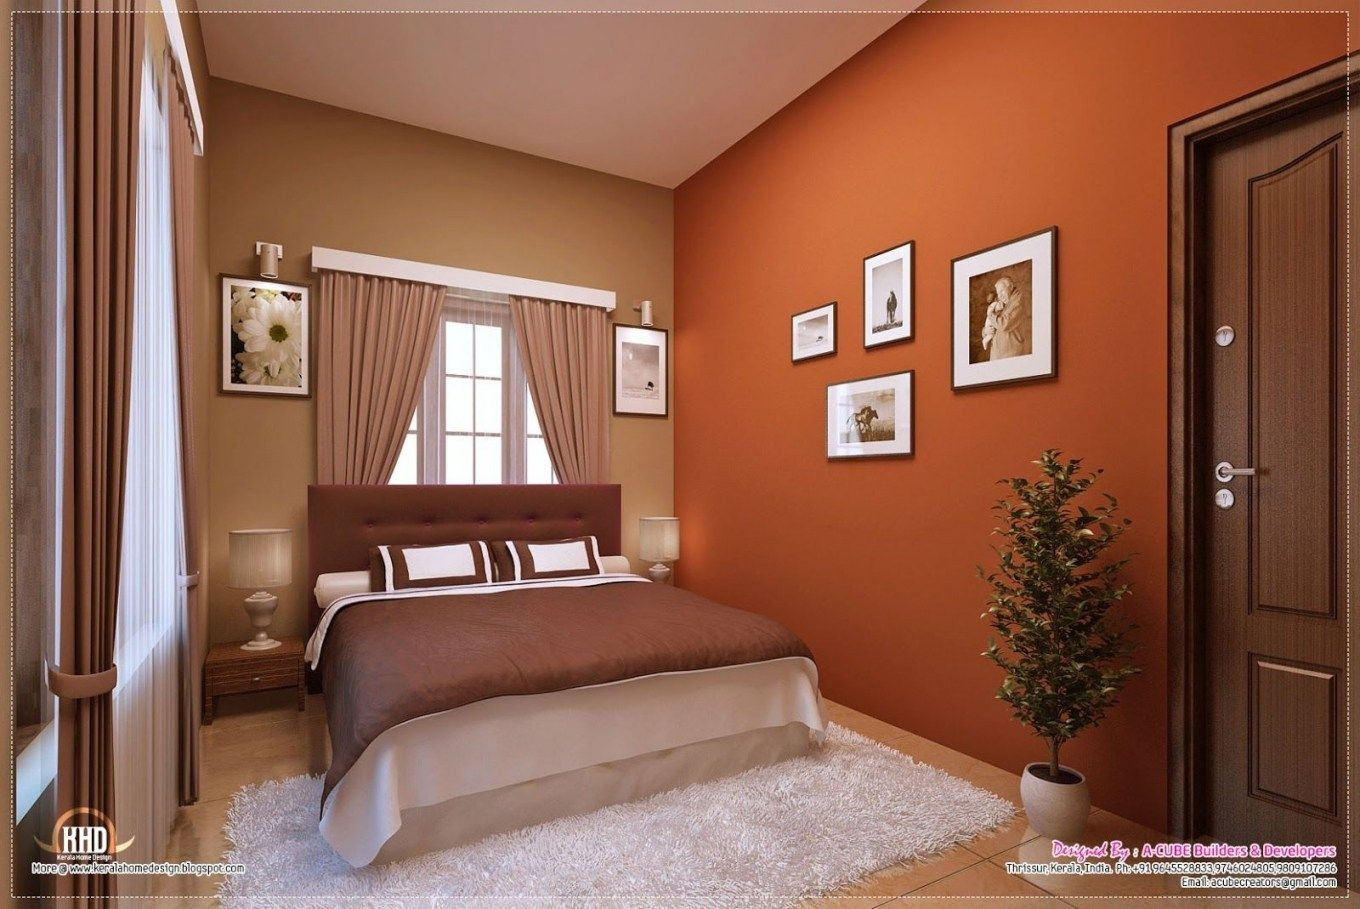 Top 10 Small Indian Bedroom Interior Design Pictures Top 10 Small Indian Bedroom Interior Design Small Bedroom Interior Indian Bedroom Decor Bedroom Interior